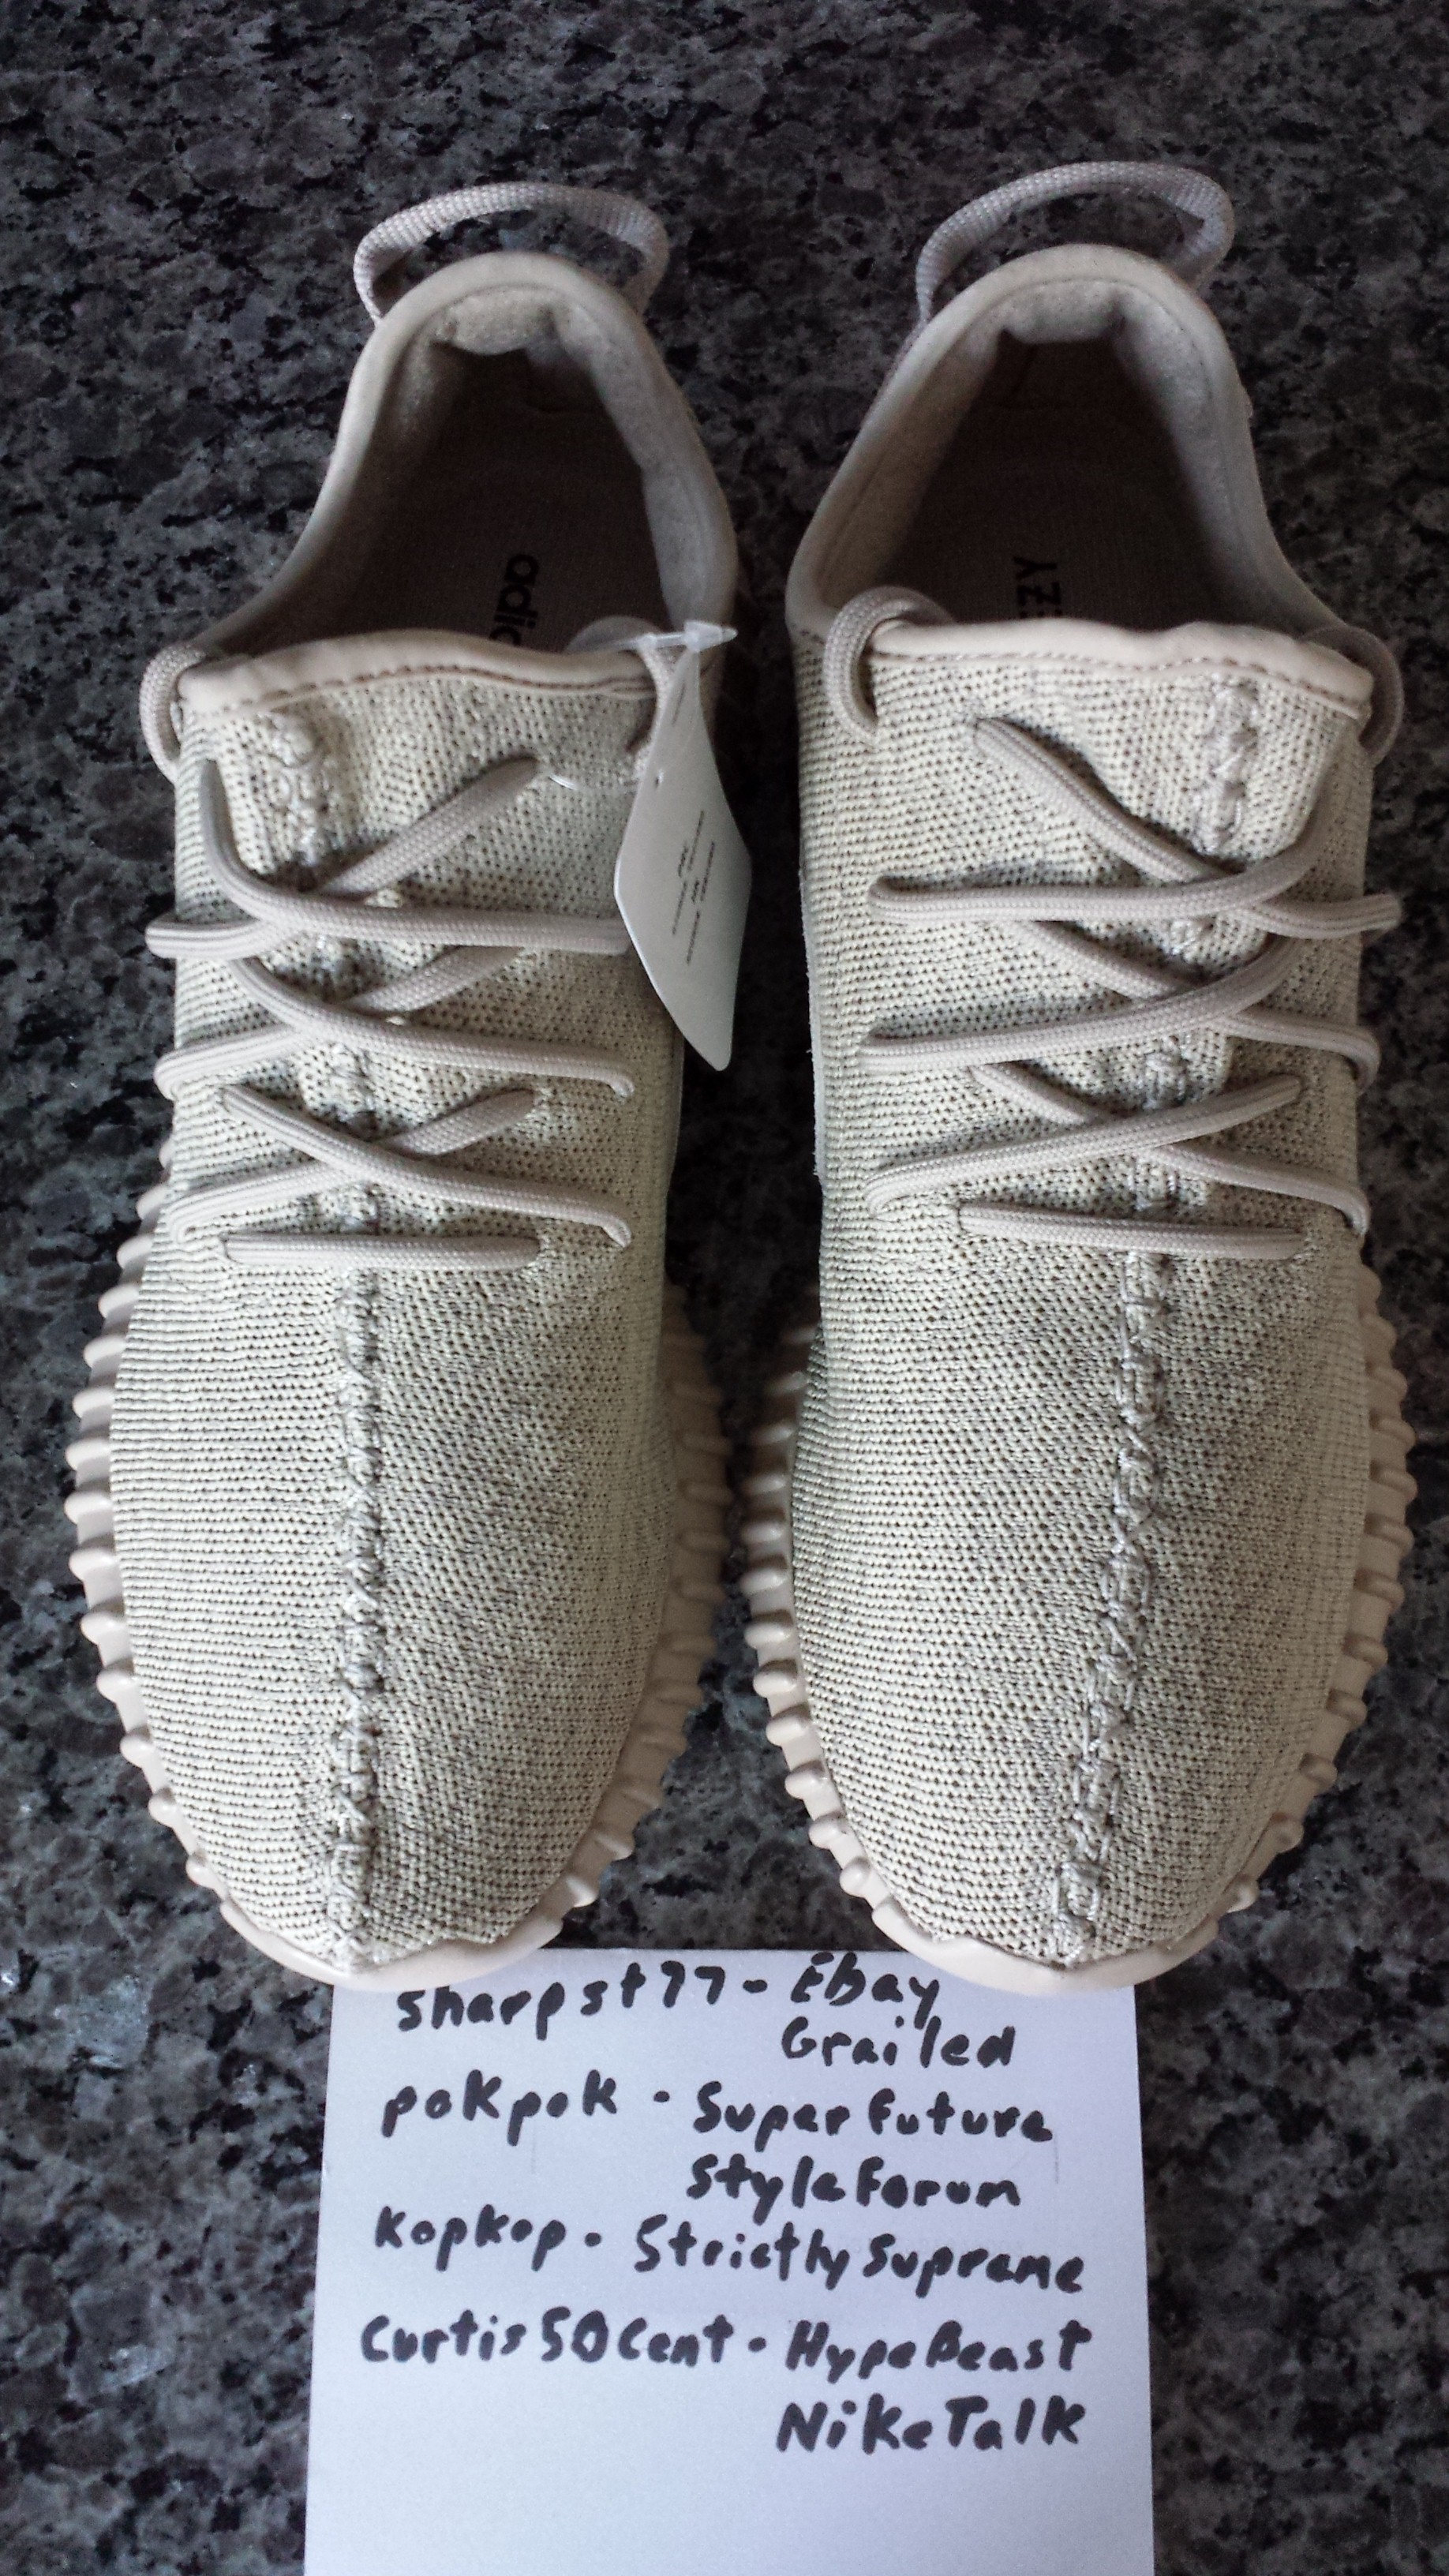 84c65c768eb45 Adidas Kanye West Yeezy Boost 350 Oxford Tan Size 9.5 - Formal Shoes ...